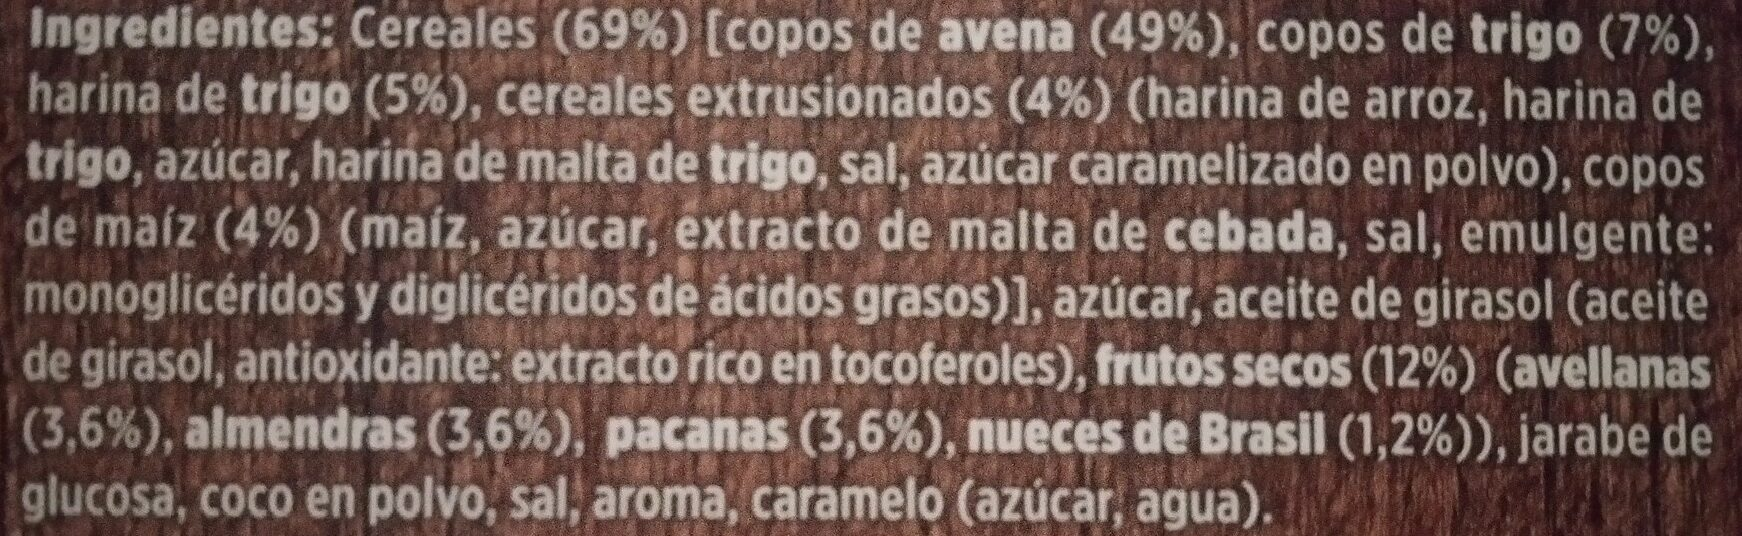 Muesli crujiente - Ingredients - es